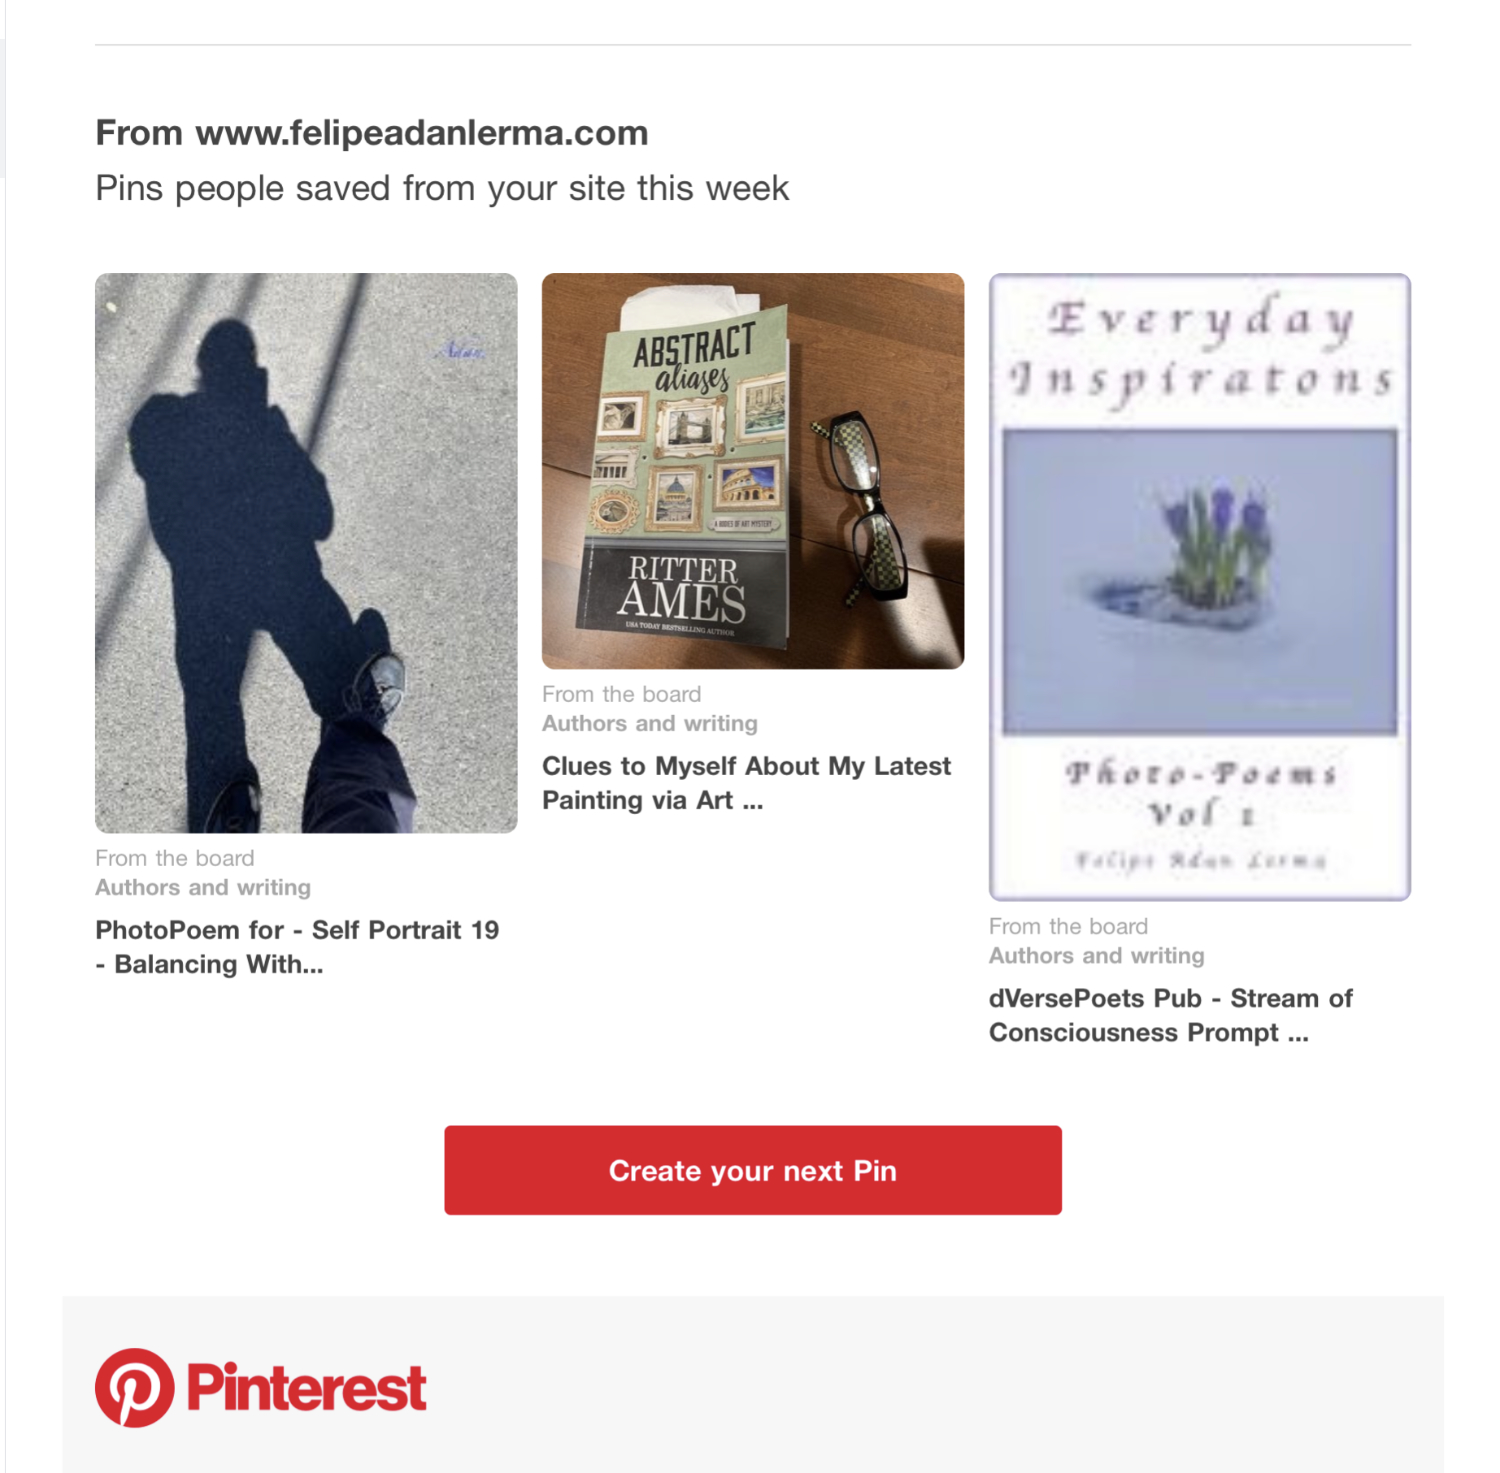 Pins people saved from my site from my blog, 1st week in August '19 on Pinterest - https://www.pinterest.com/felipeadanlerma - Self Portraits, Mystery Fiction, PhotoPoems